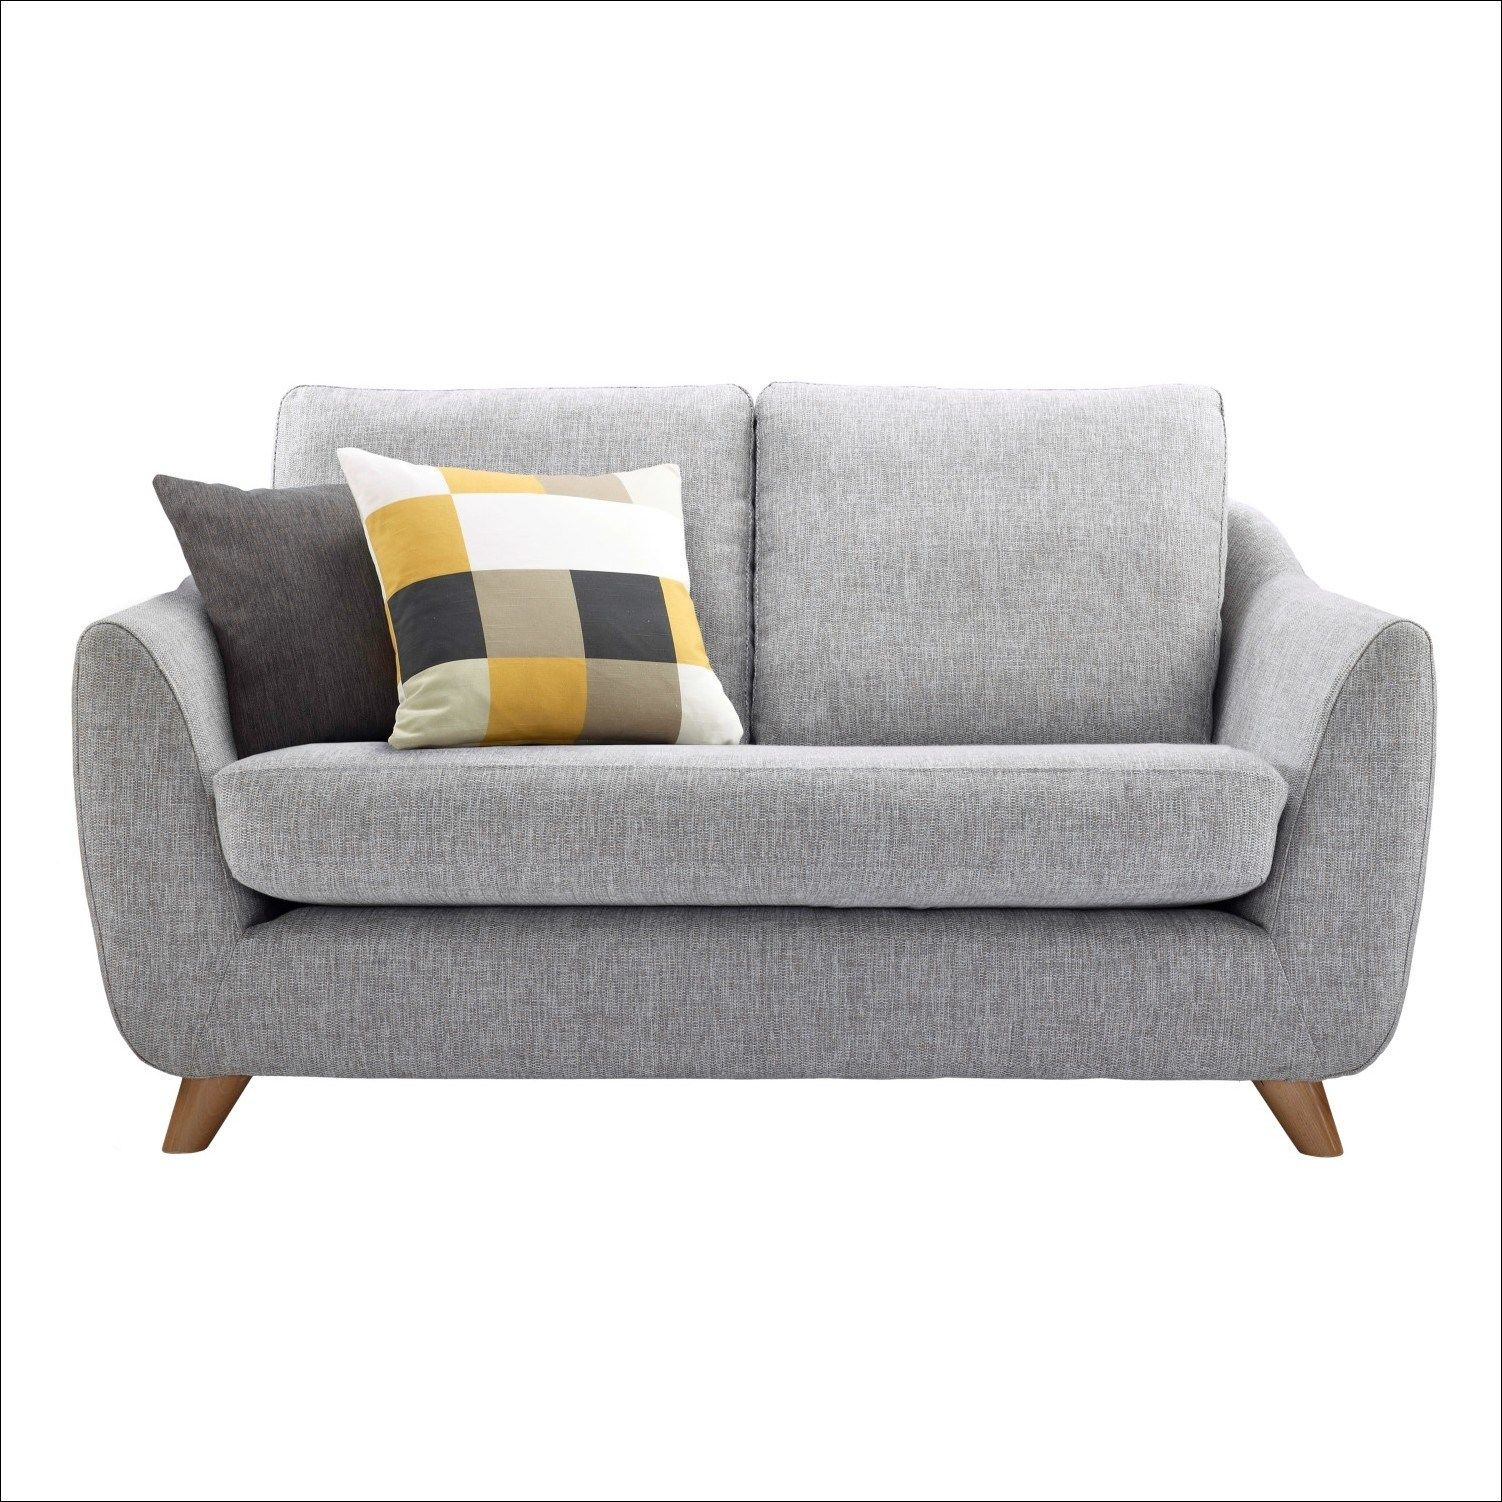 35 Ideas Modern Loveseat For Small Spaces Cheap Small Sofa